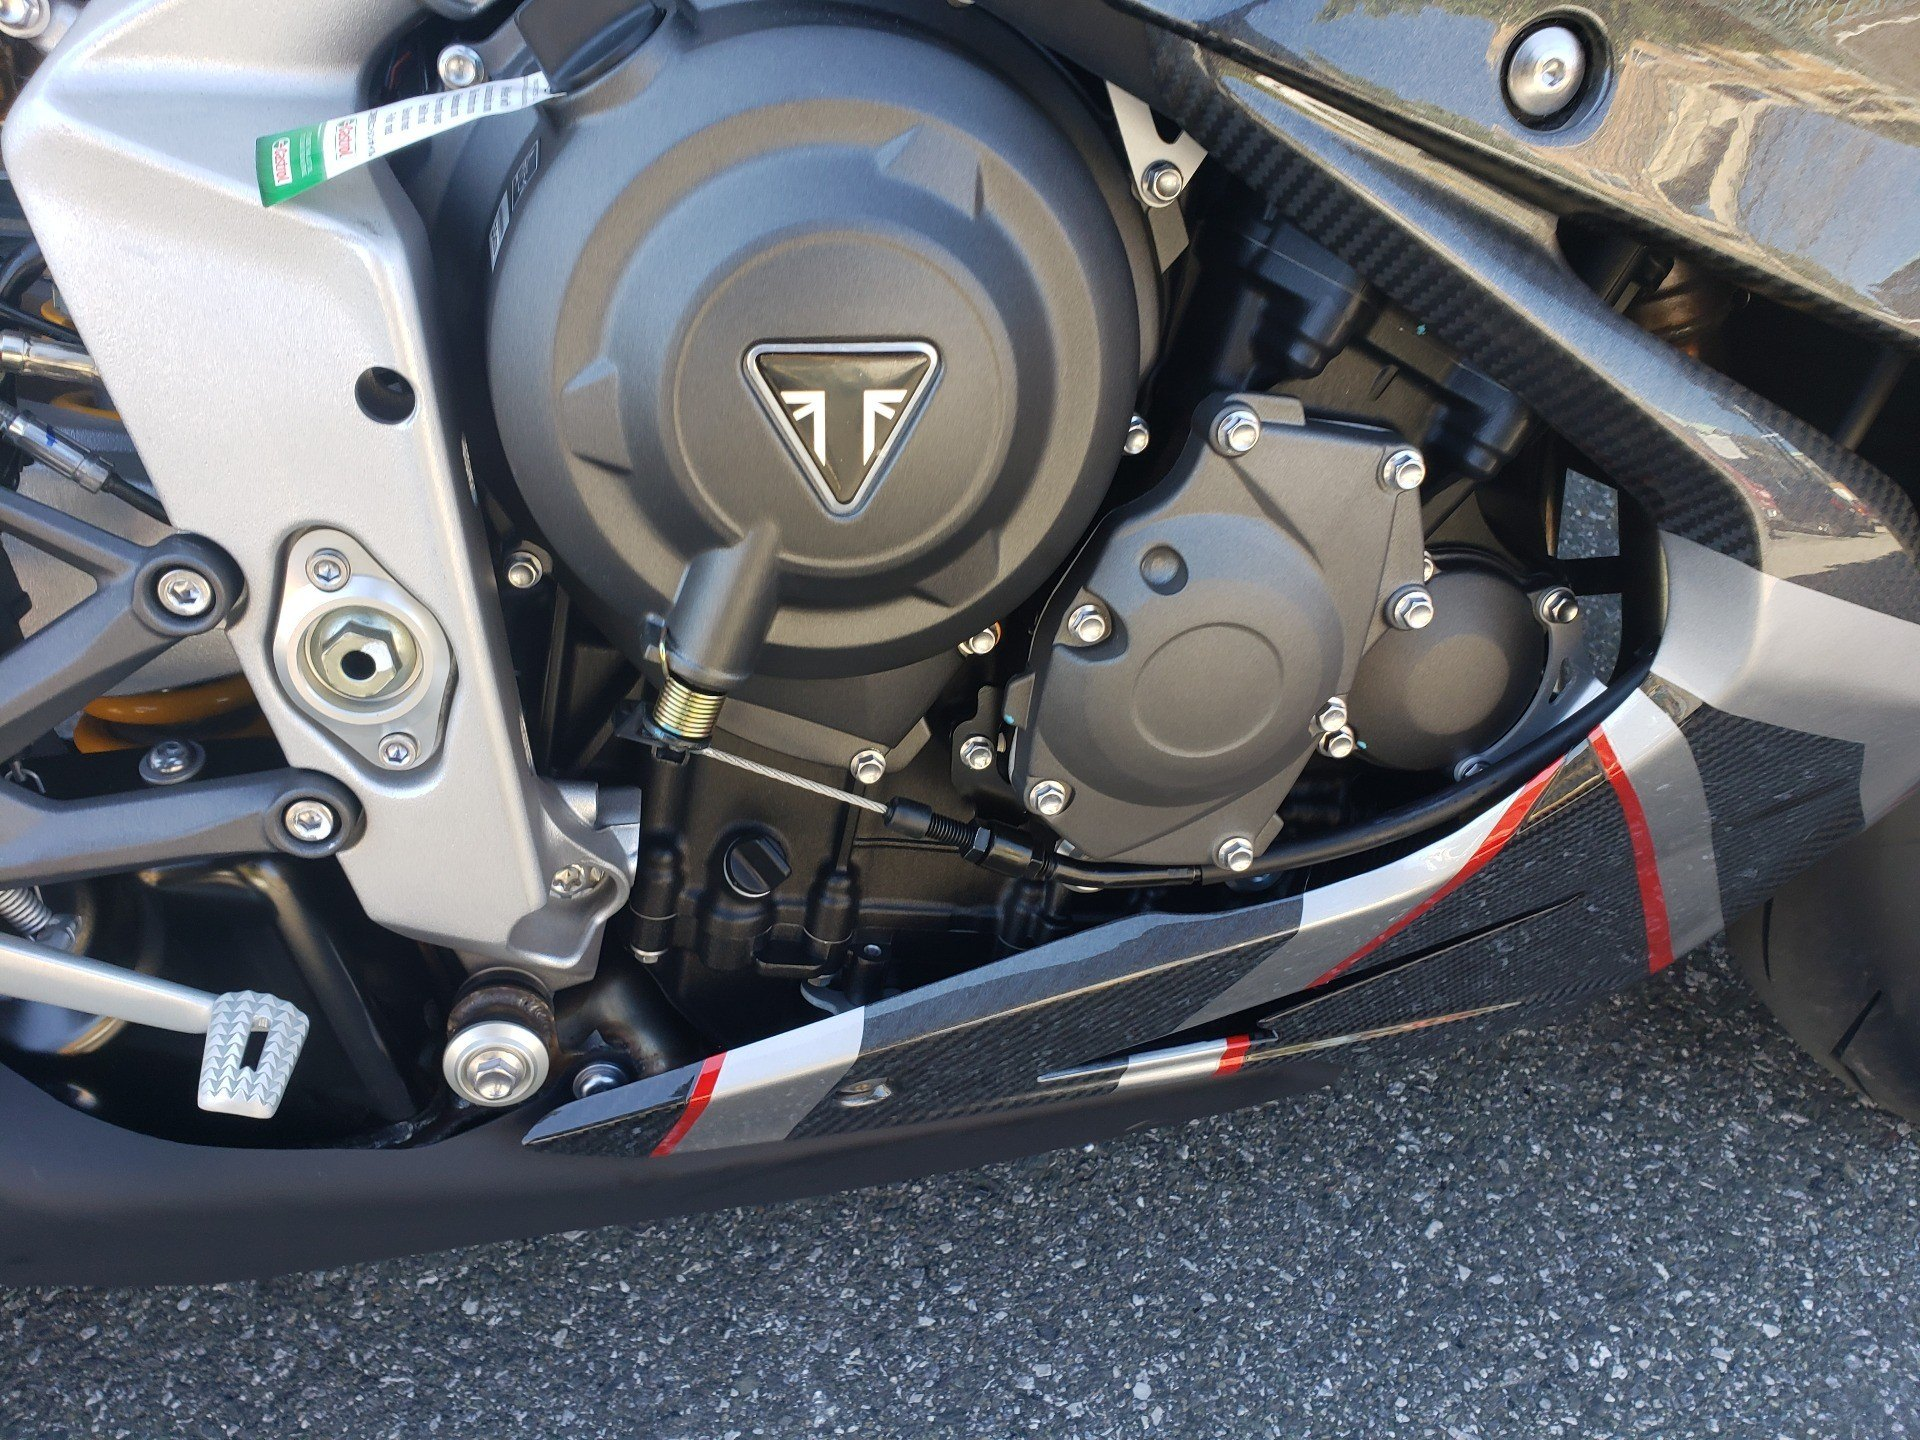 2020 Triumph Daytona Moto2 765 Limited Edition in San Jose, California - Photo 9